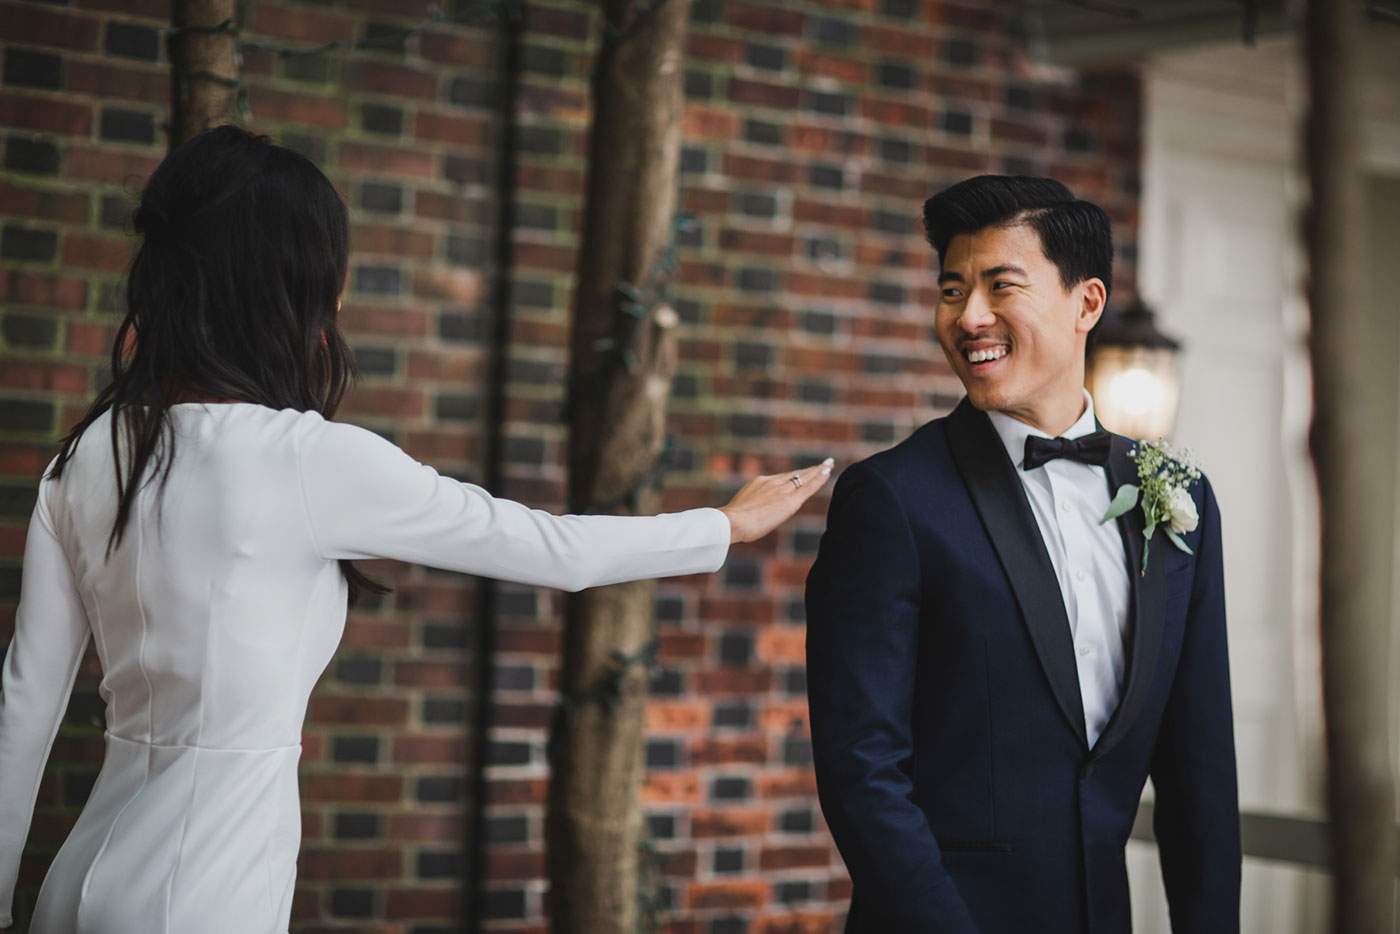 first look reaction at Morris House Hotel by Weddings by Hanel